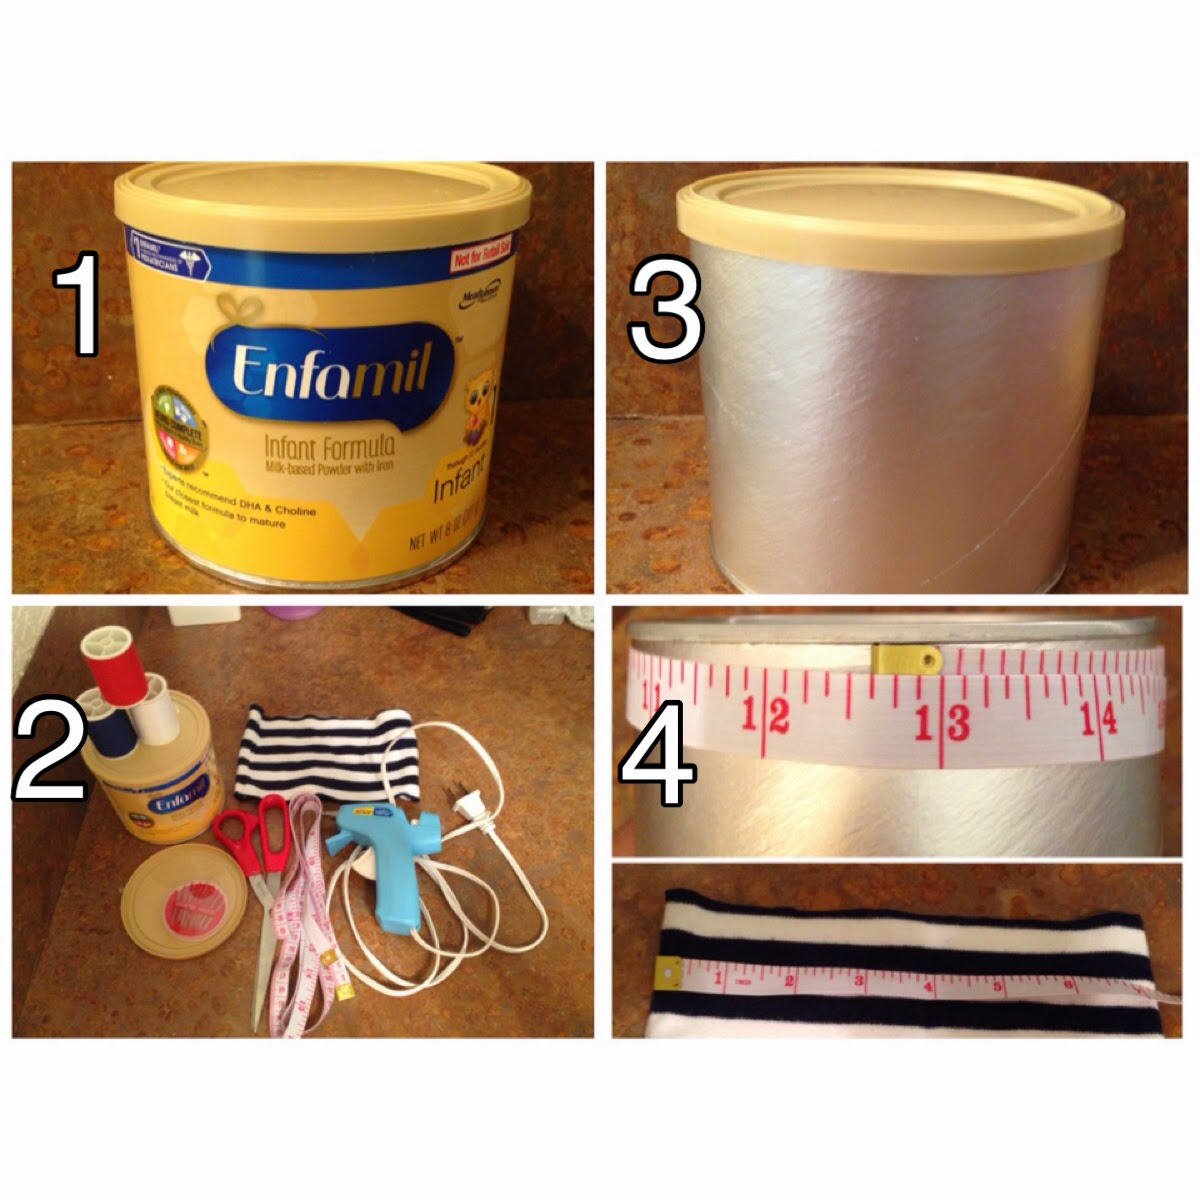 KosmoKaila: How To Re-Use Baby Formula Cans: Q-Tip Holder